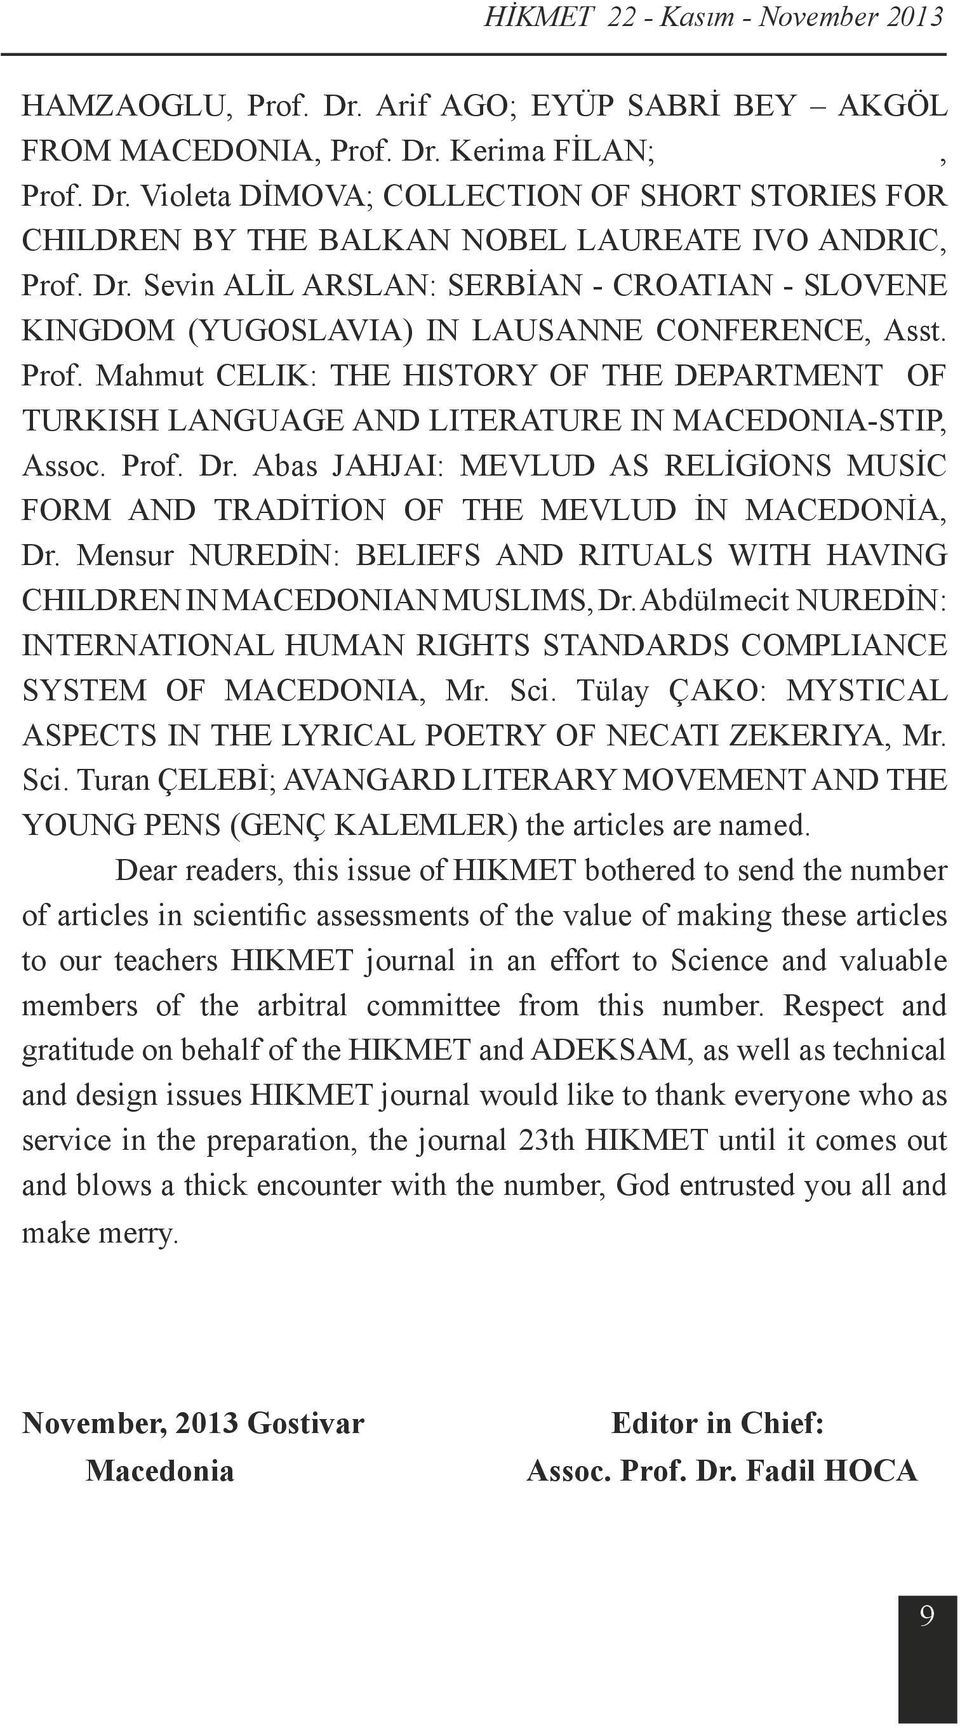 Mahmut CELIK: THE HISTORY OF THE DEPARTMENT OF TURKISH LANGUAGE AND LITERATURE IN MACEDONIA-STIP, Assoc. Prof. Dr.